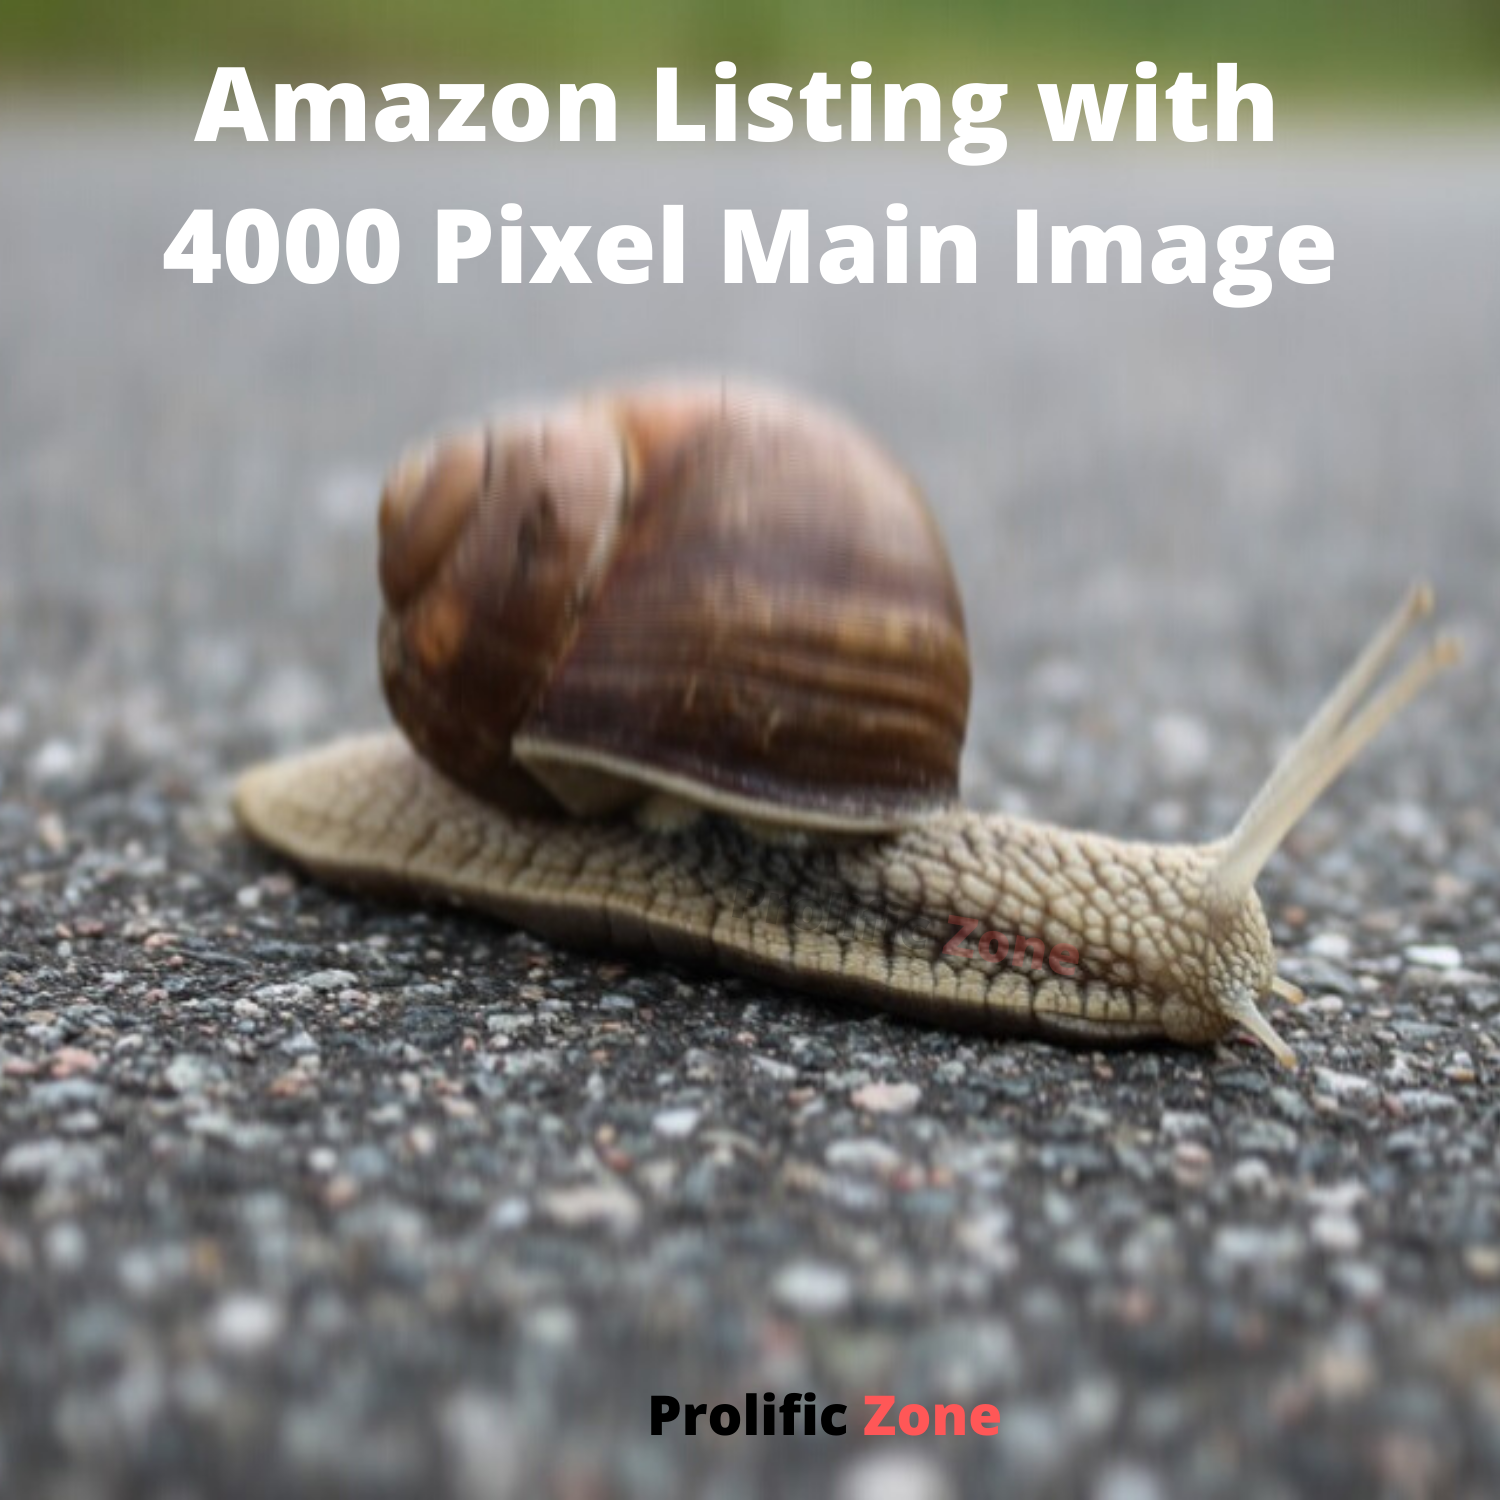 Amazon Listing with 4000 Pixel Main Image